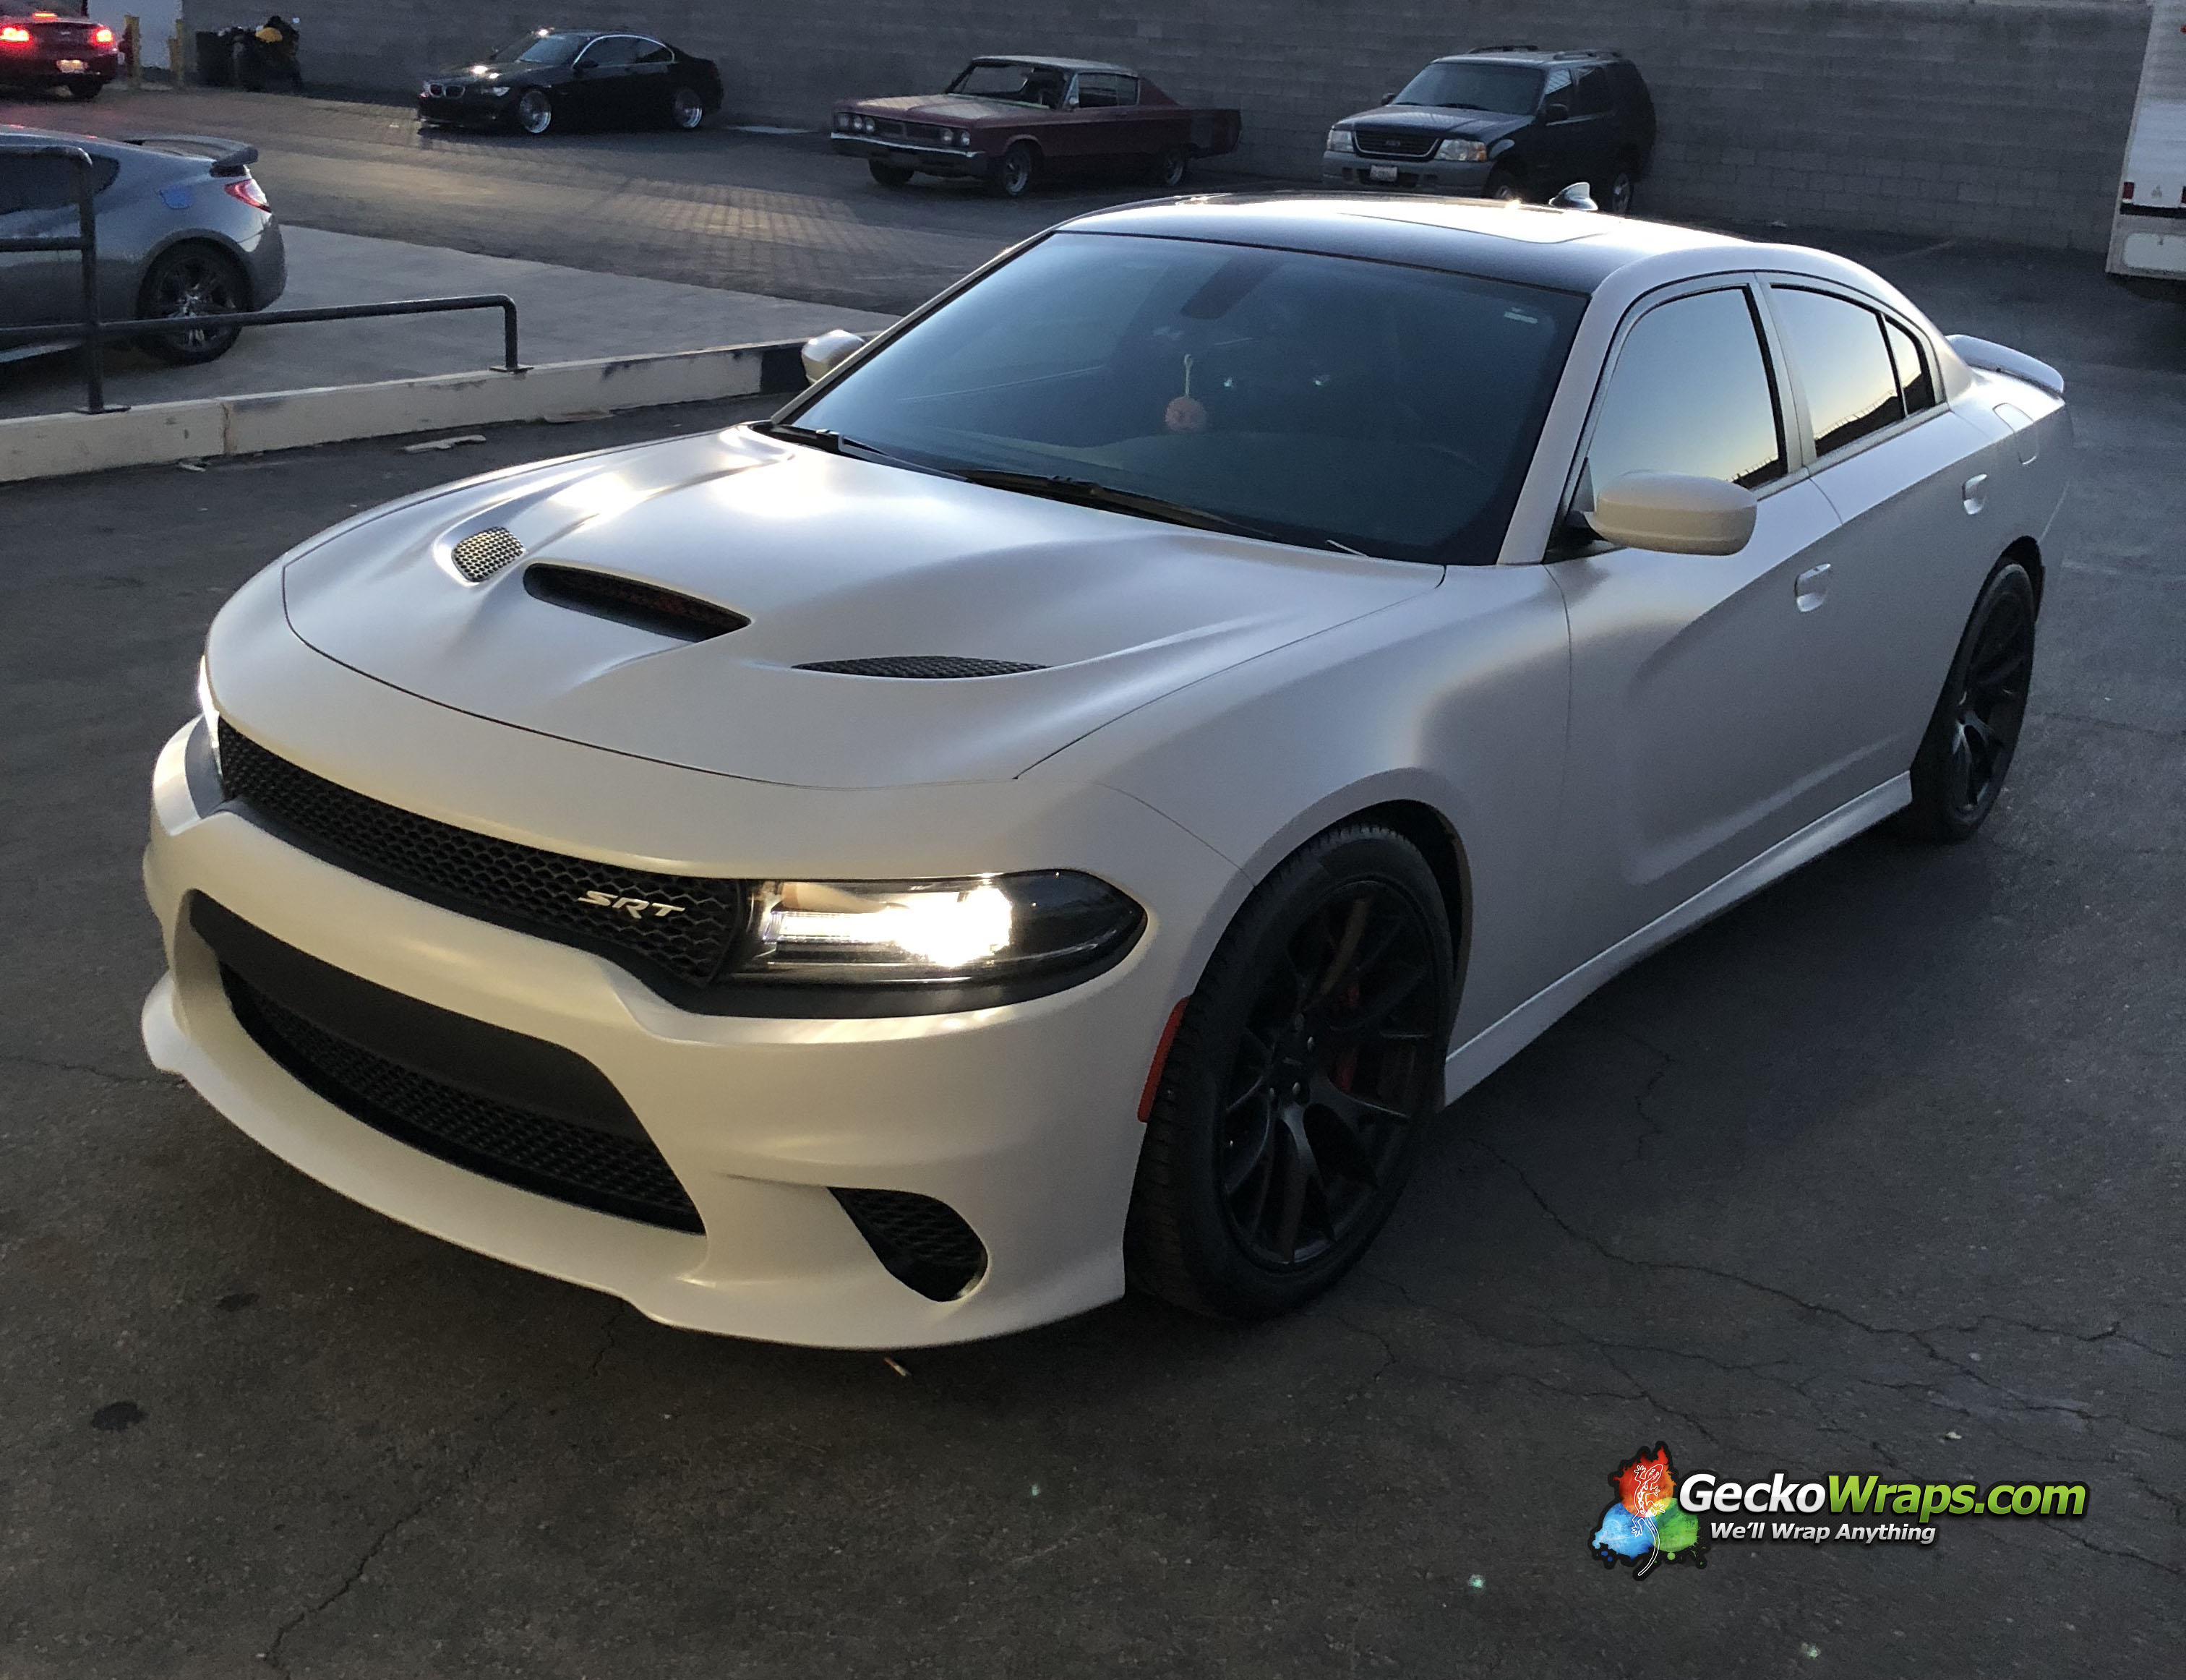 2017 Dodge Charger SRT Hellcat - Matte Nardo Grey ...